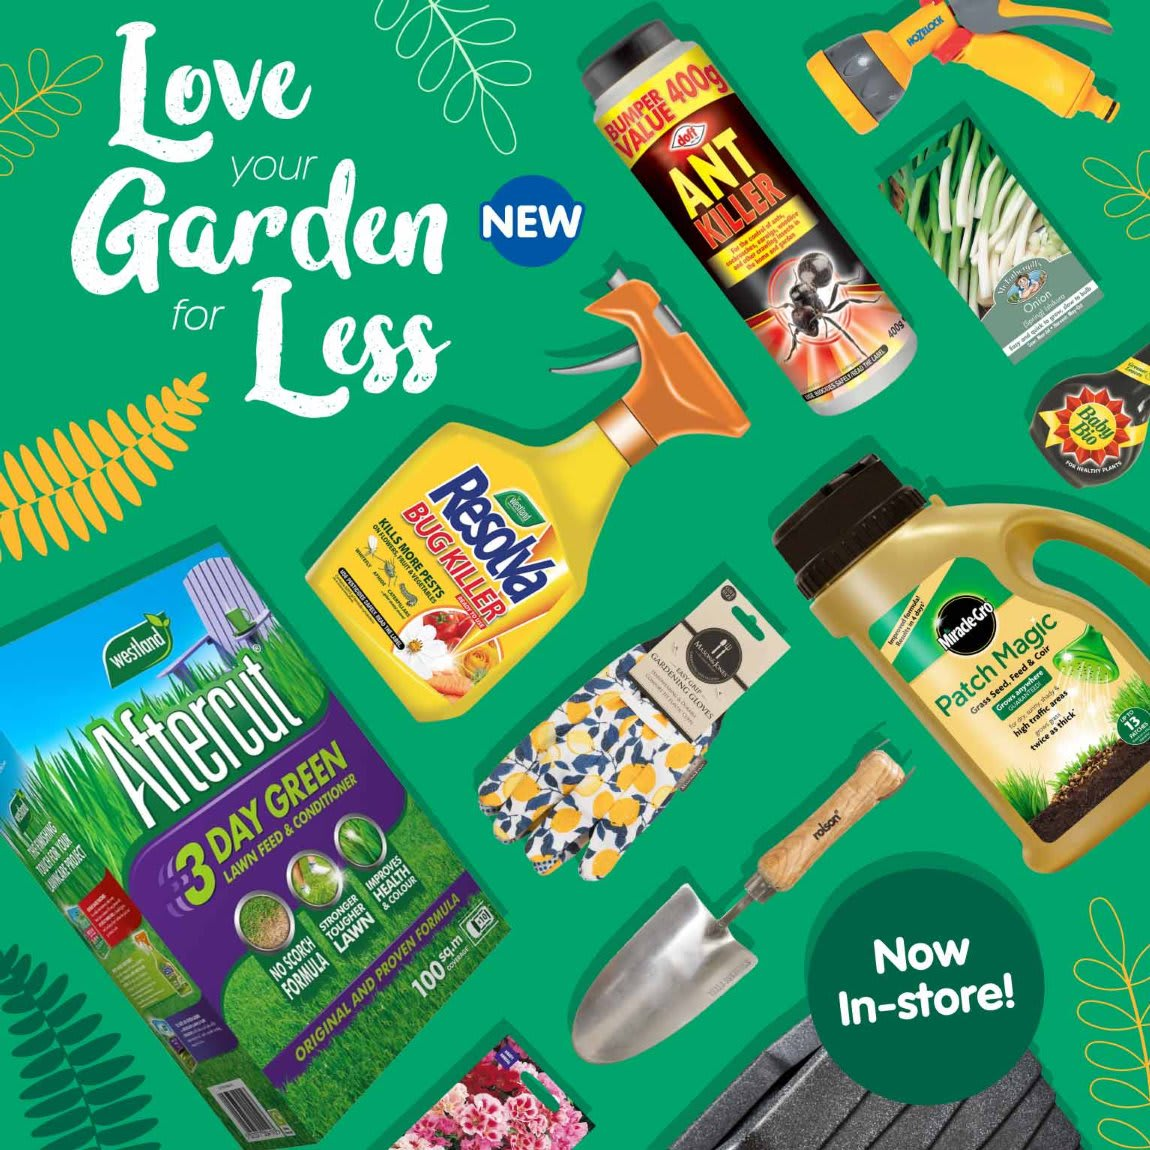 Garden now in store at B&M.